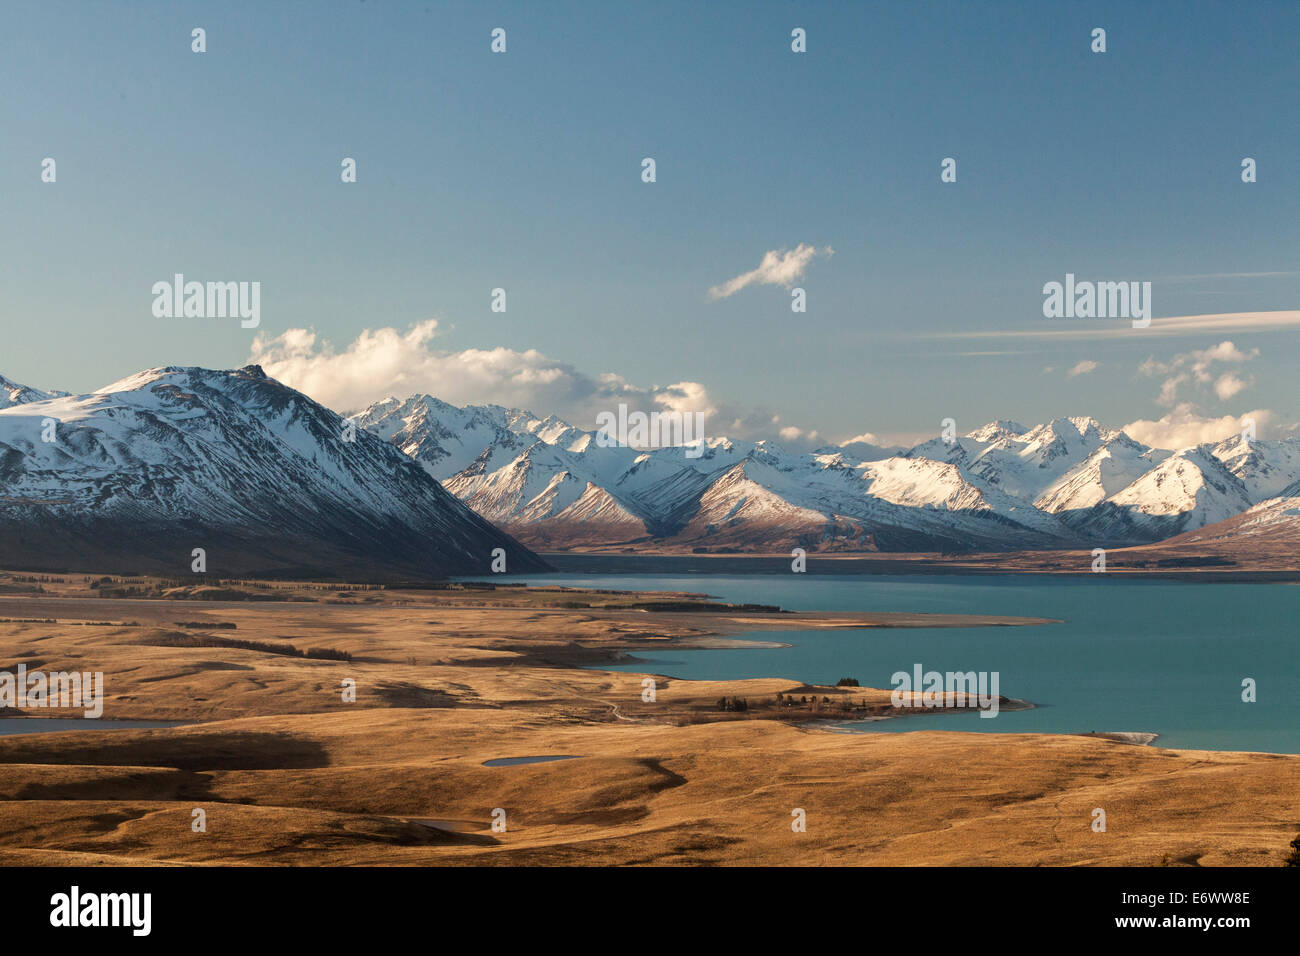 View from Mt. John, Tekapo, rock particles brought down by glacial melt waters, Canterbury, South Island, New Zealand - Stock Image